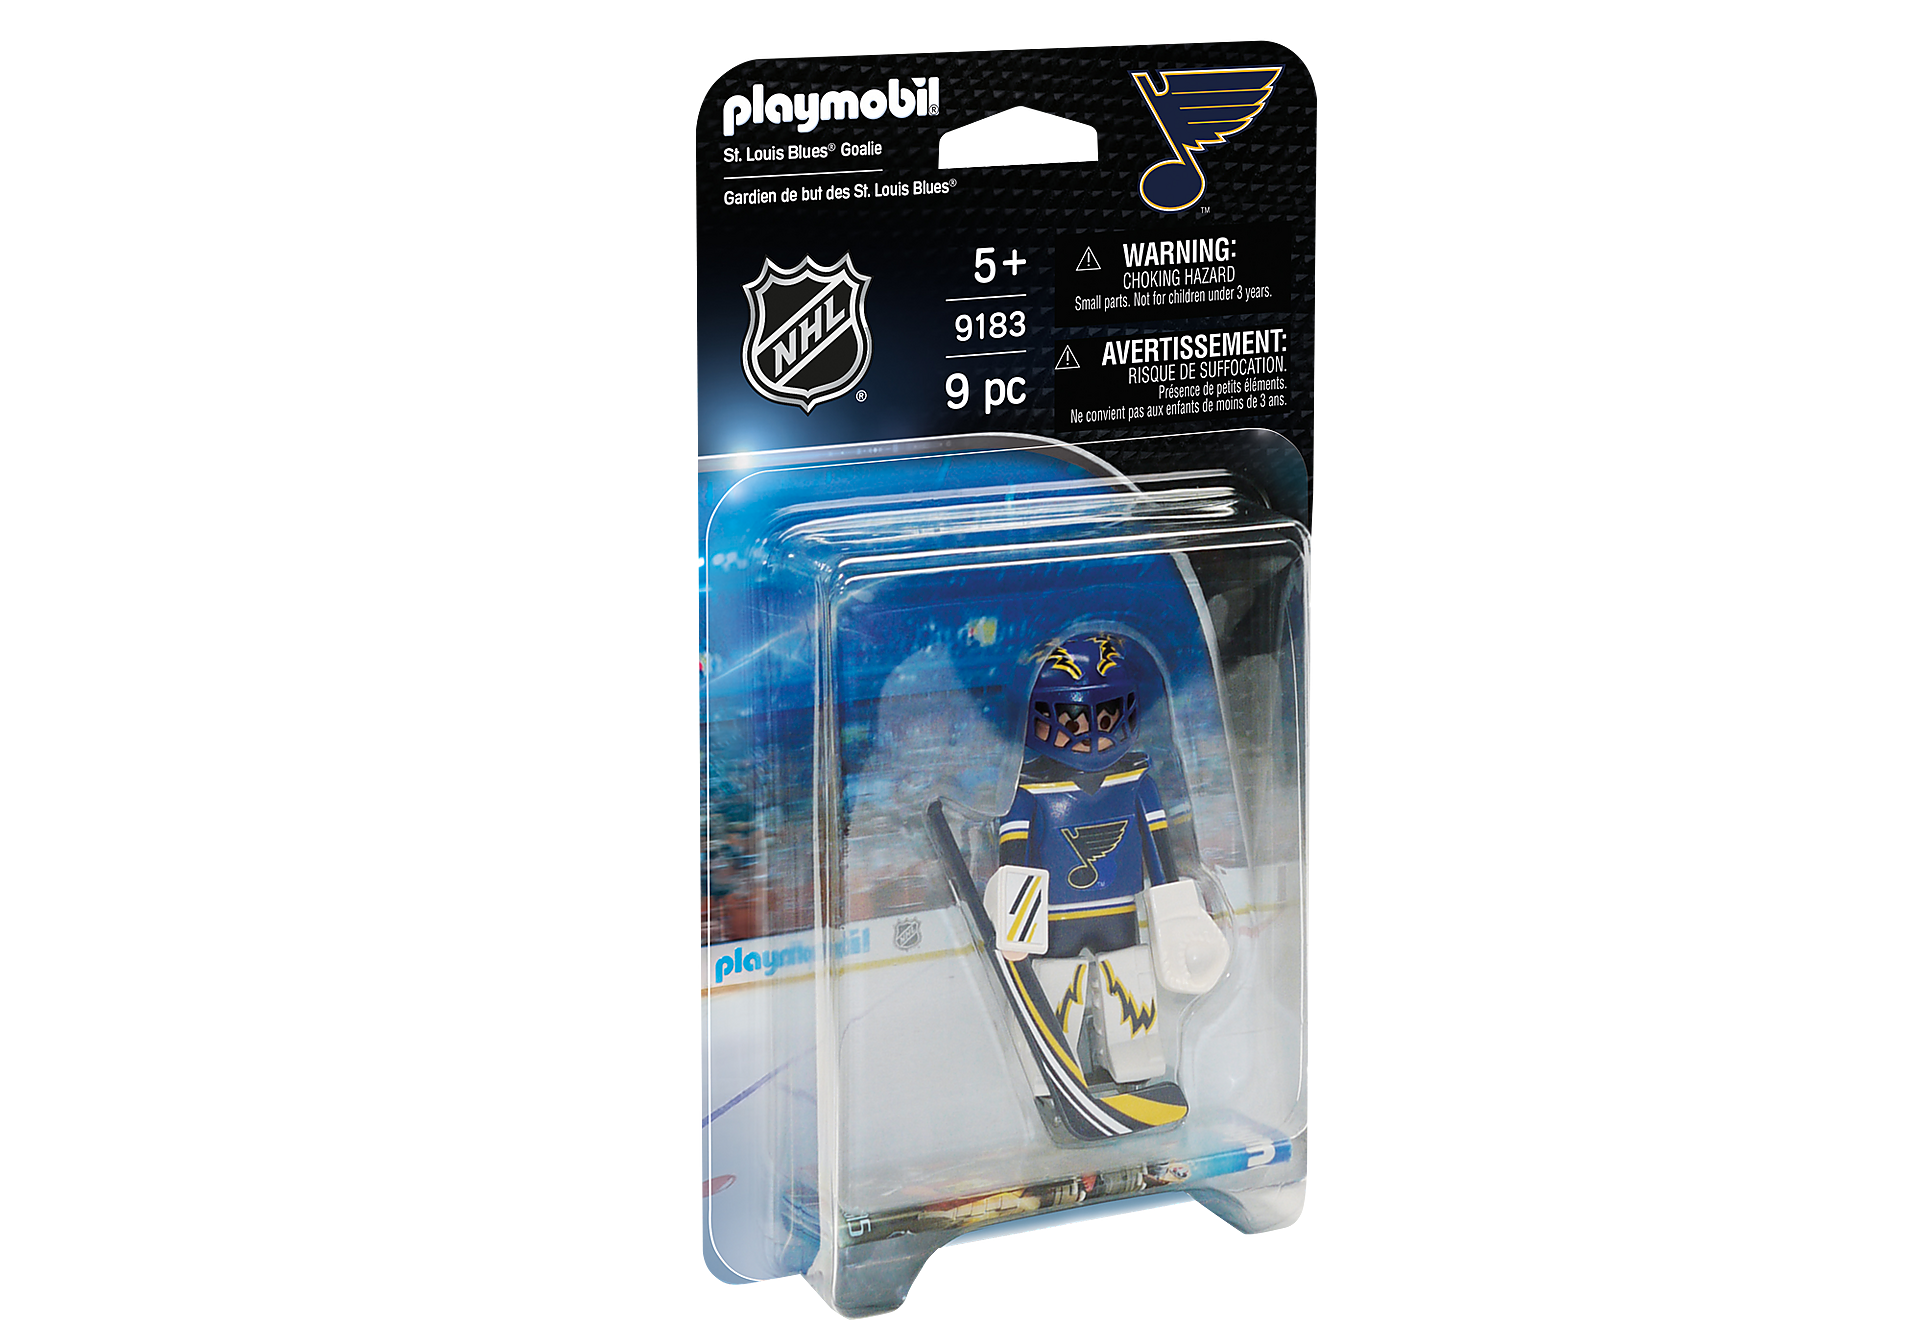 http://media.playmobil.com/i/playmobil/9183_product_box_front/NHL™ St. Louis Blues™ Goalie